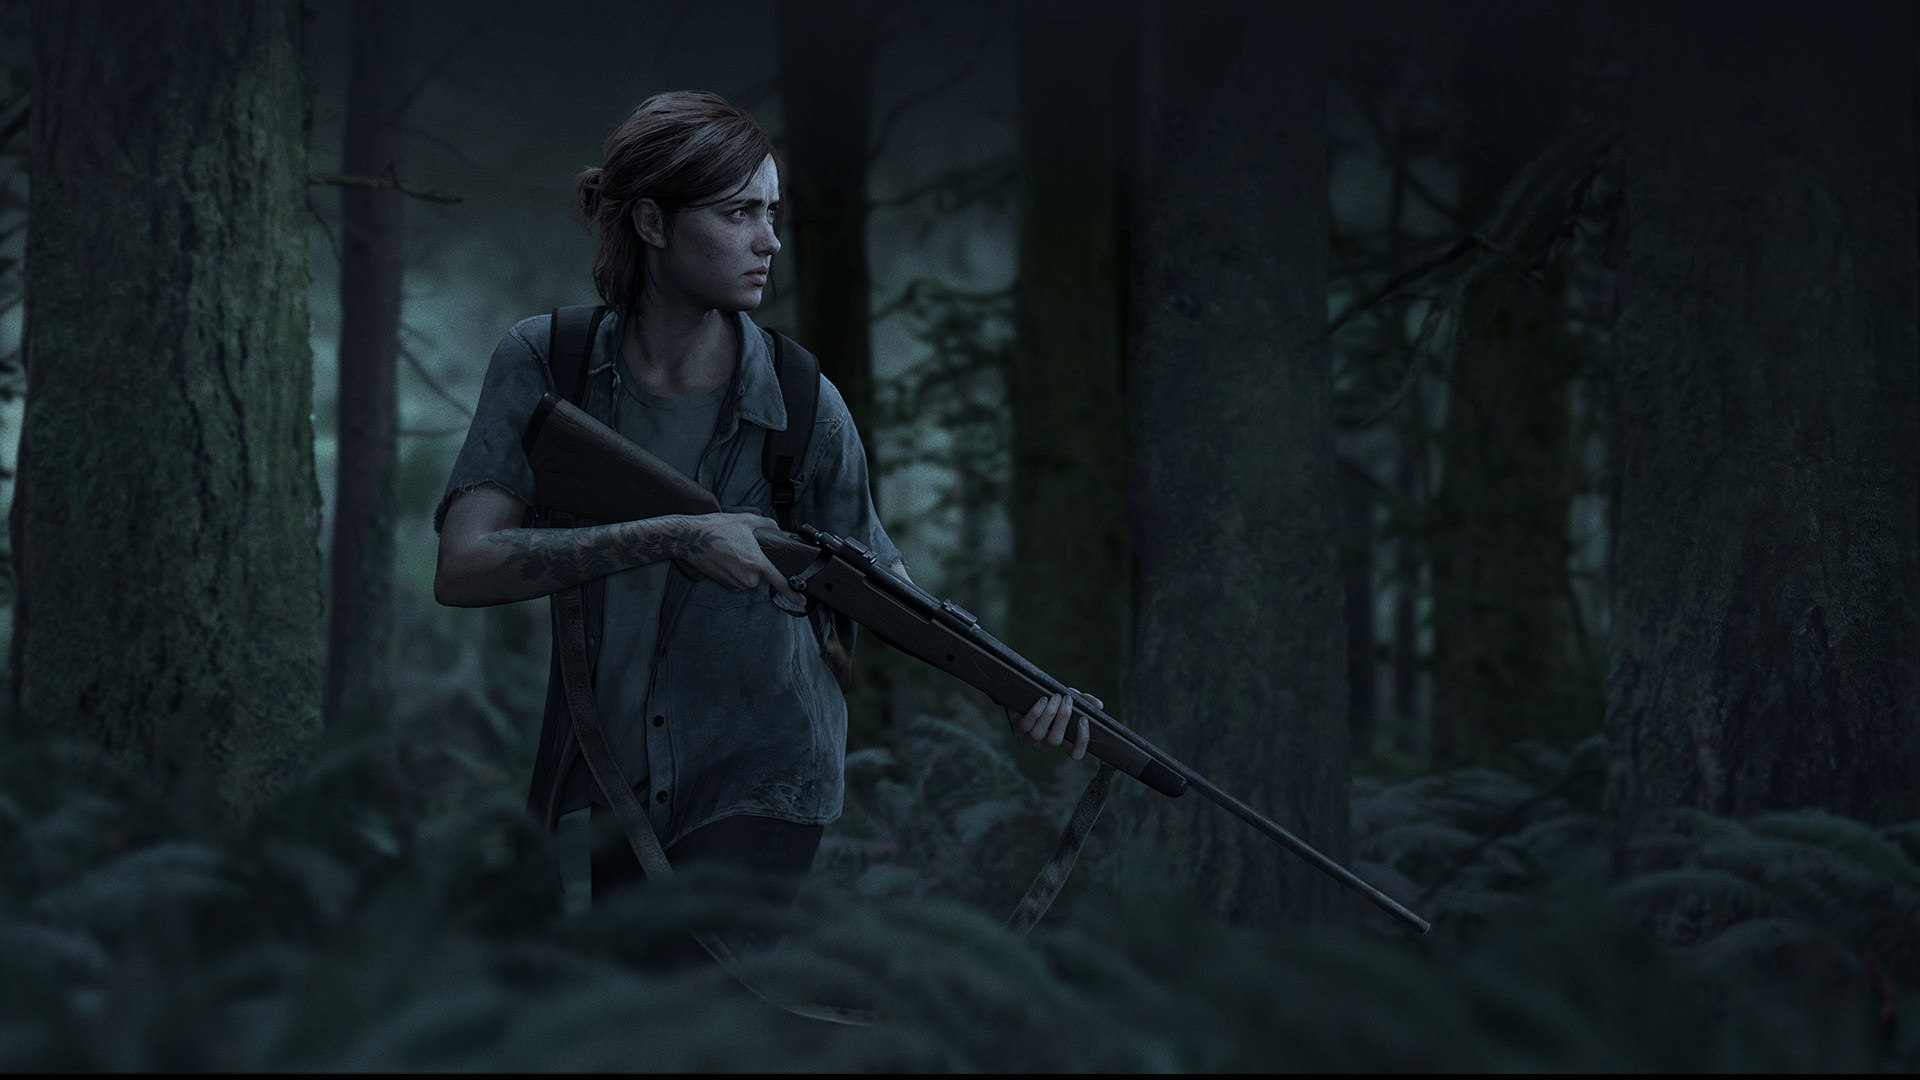 1920x1080] The Last of Us 2 Ellie Wallpaper PSW 1920x1080